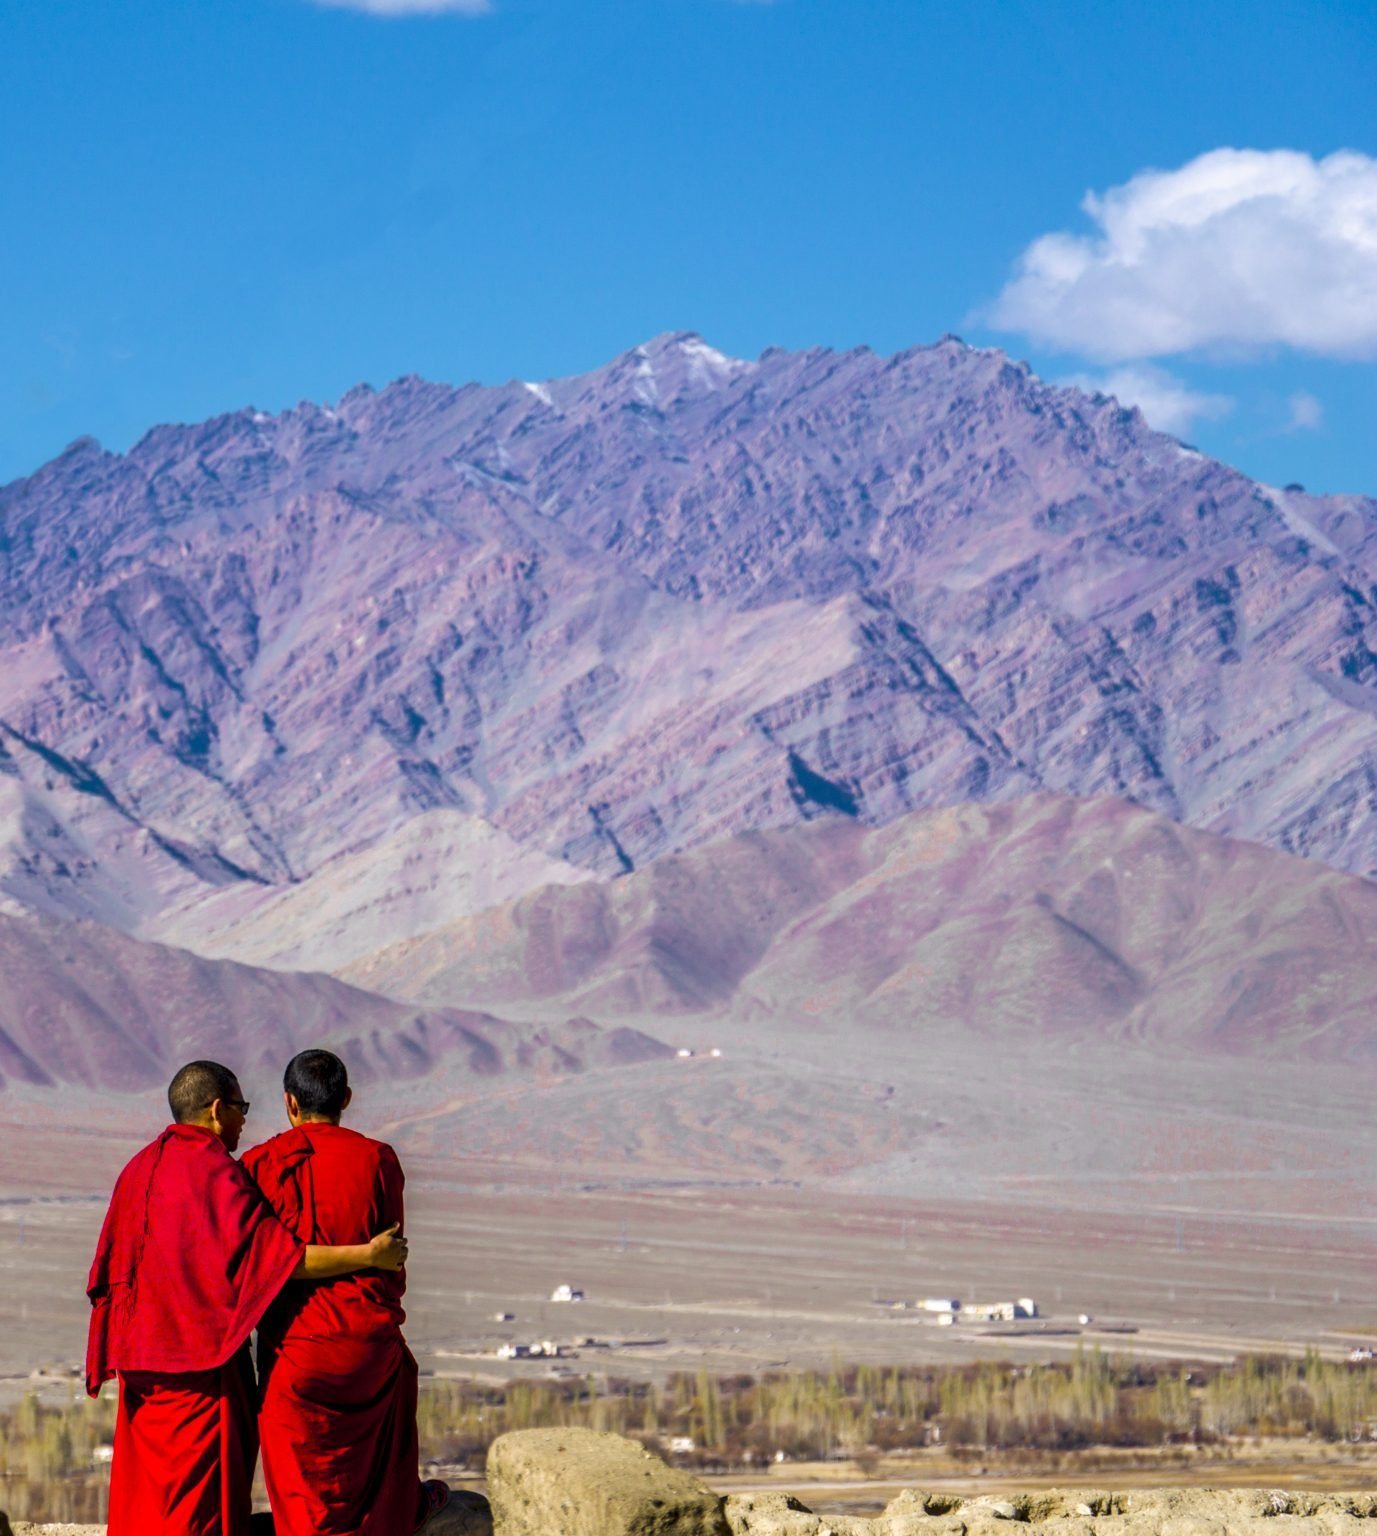 A photograph of two people wearing red material looking out towards the mountains on a sunny day.